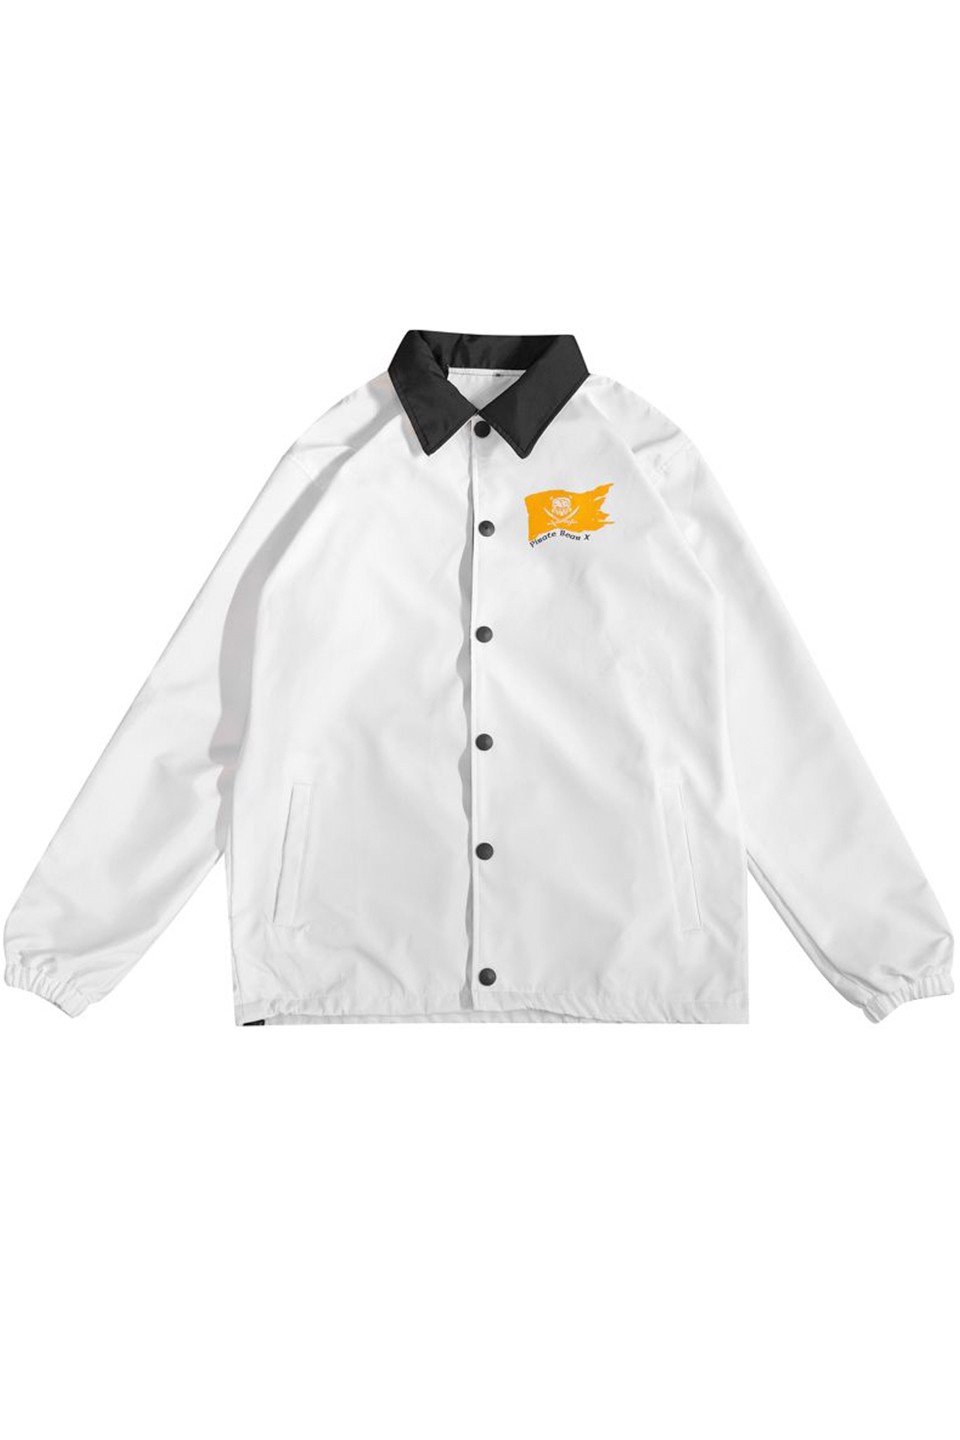 Pirate Jacket - White